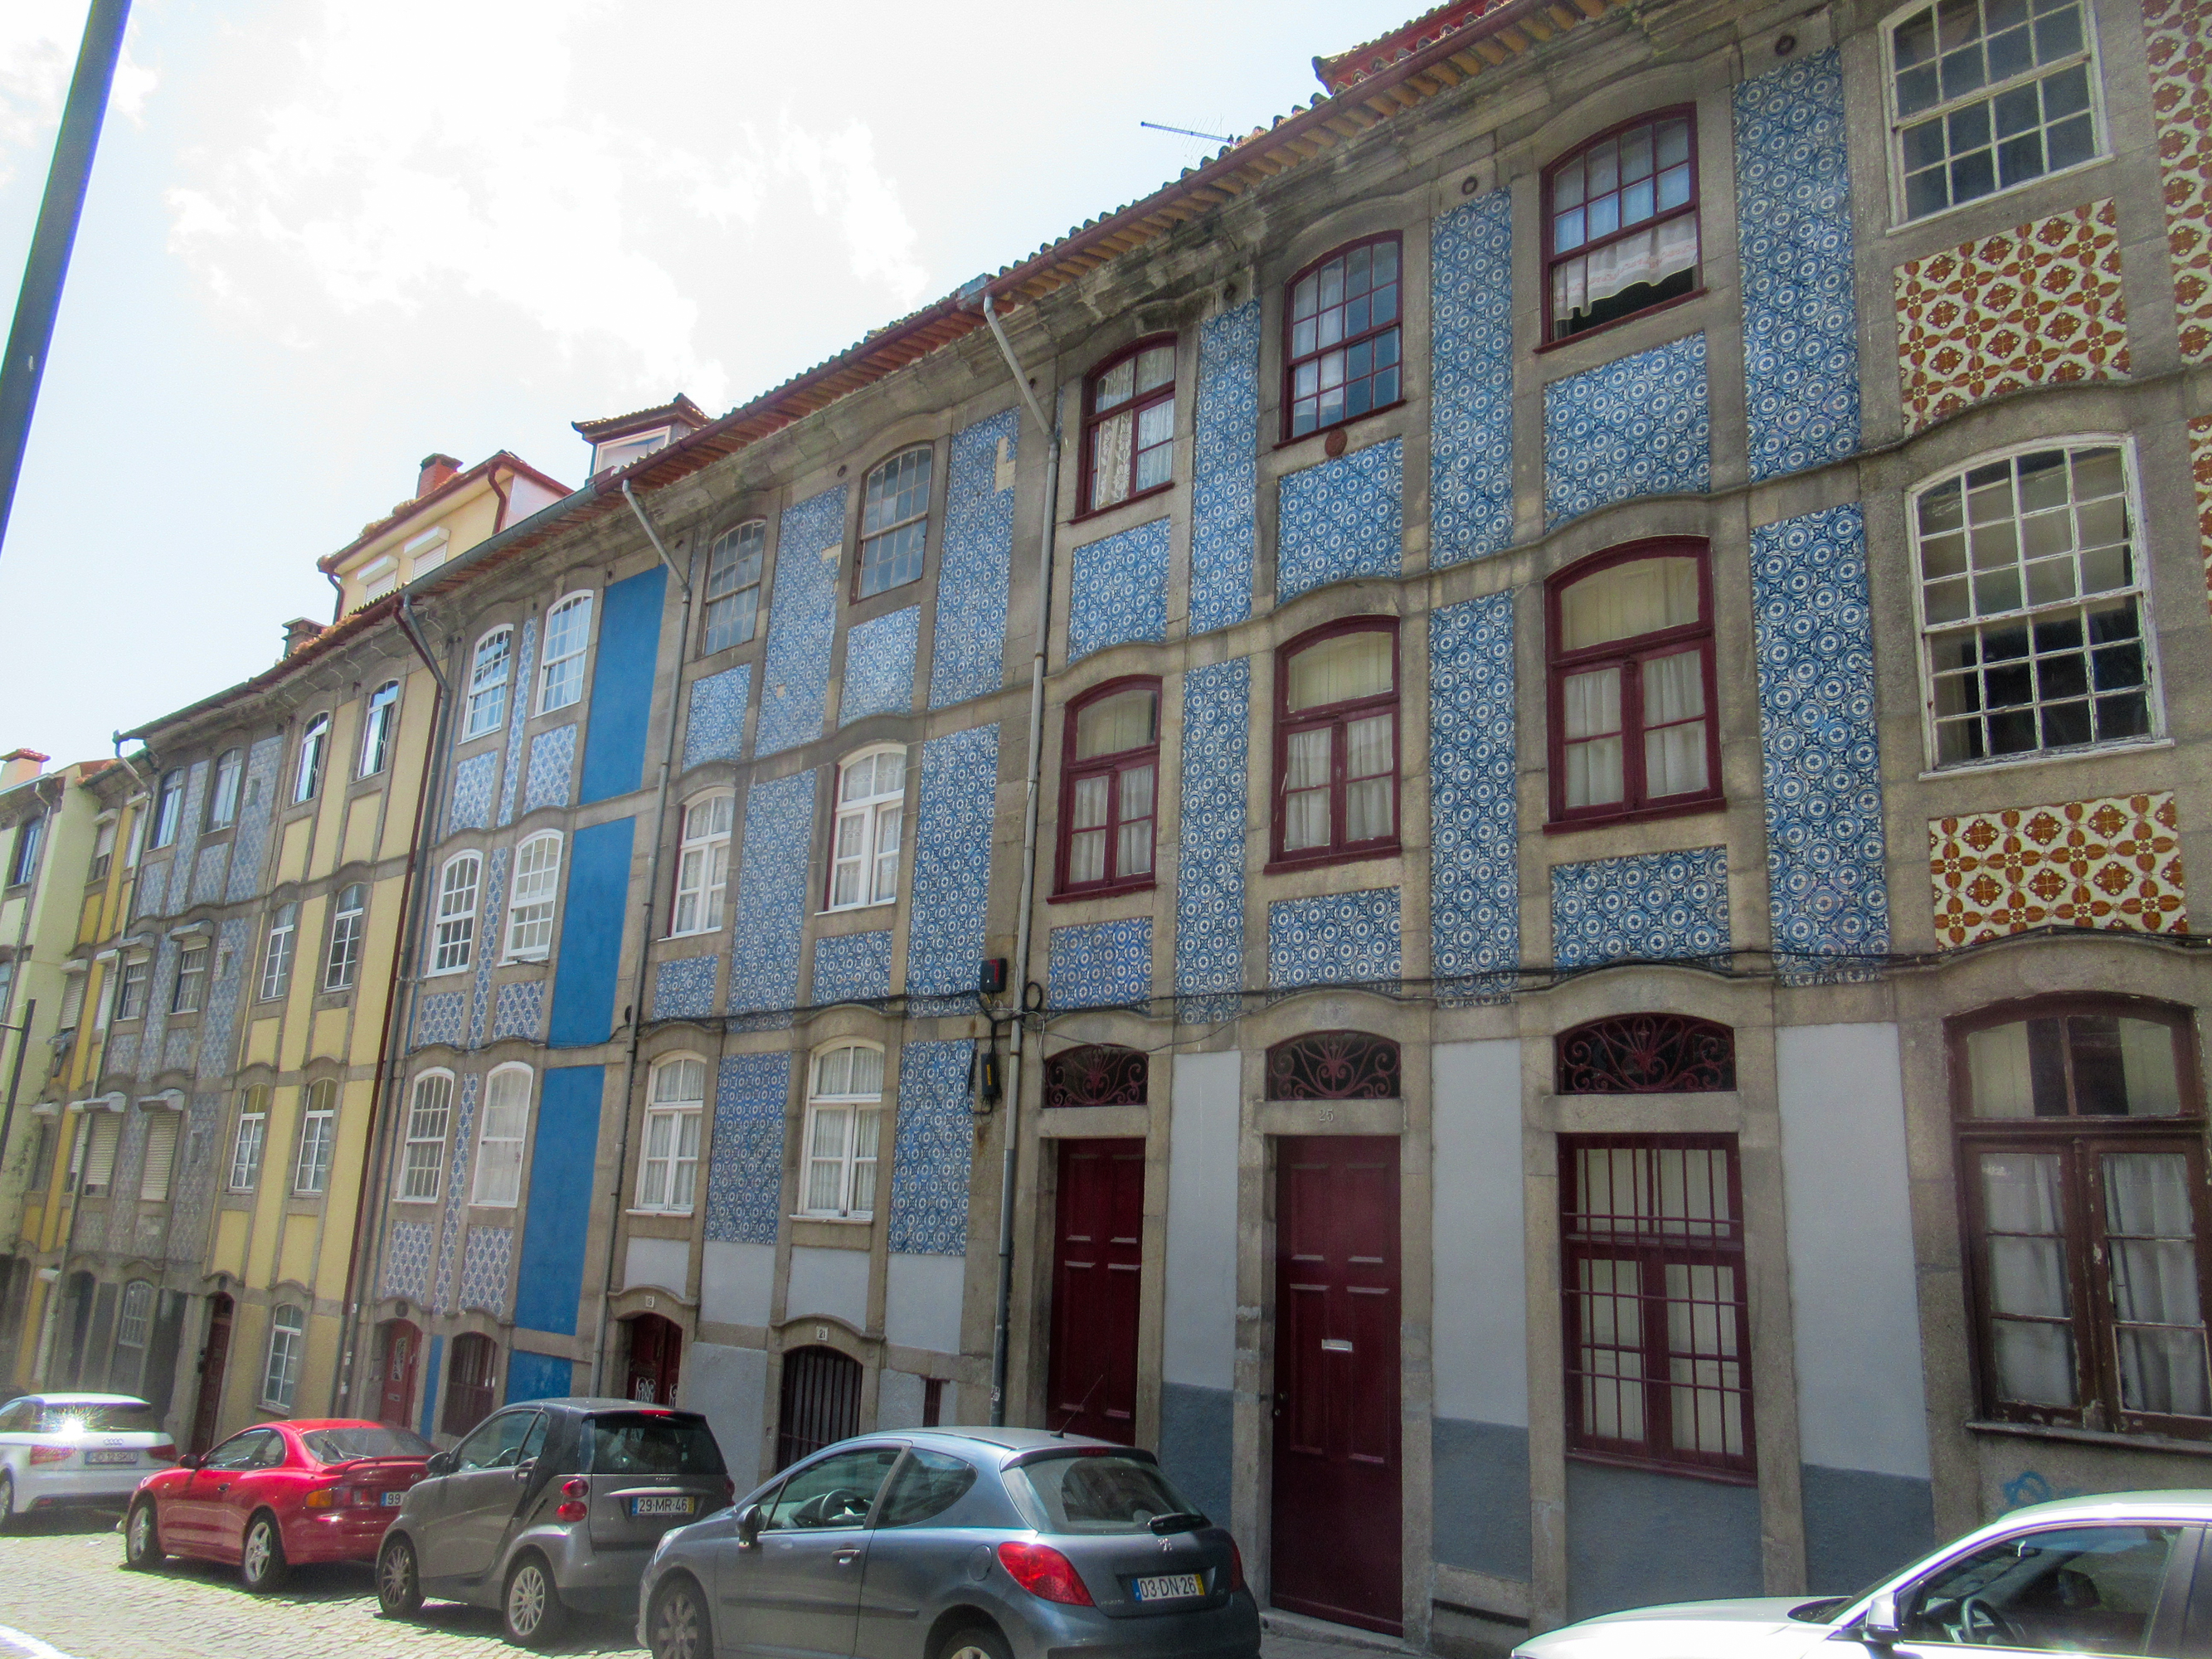 Tiled building in the narrow streets of Porto, Portugal.